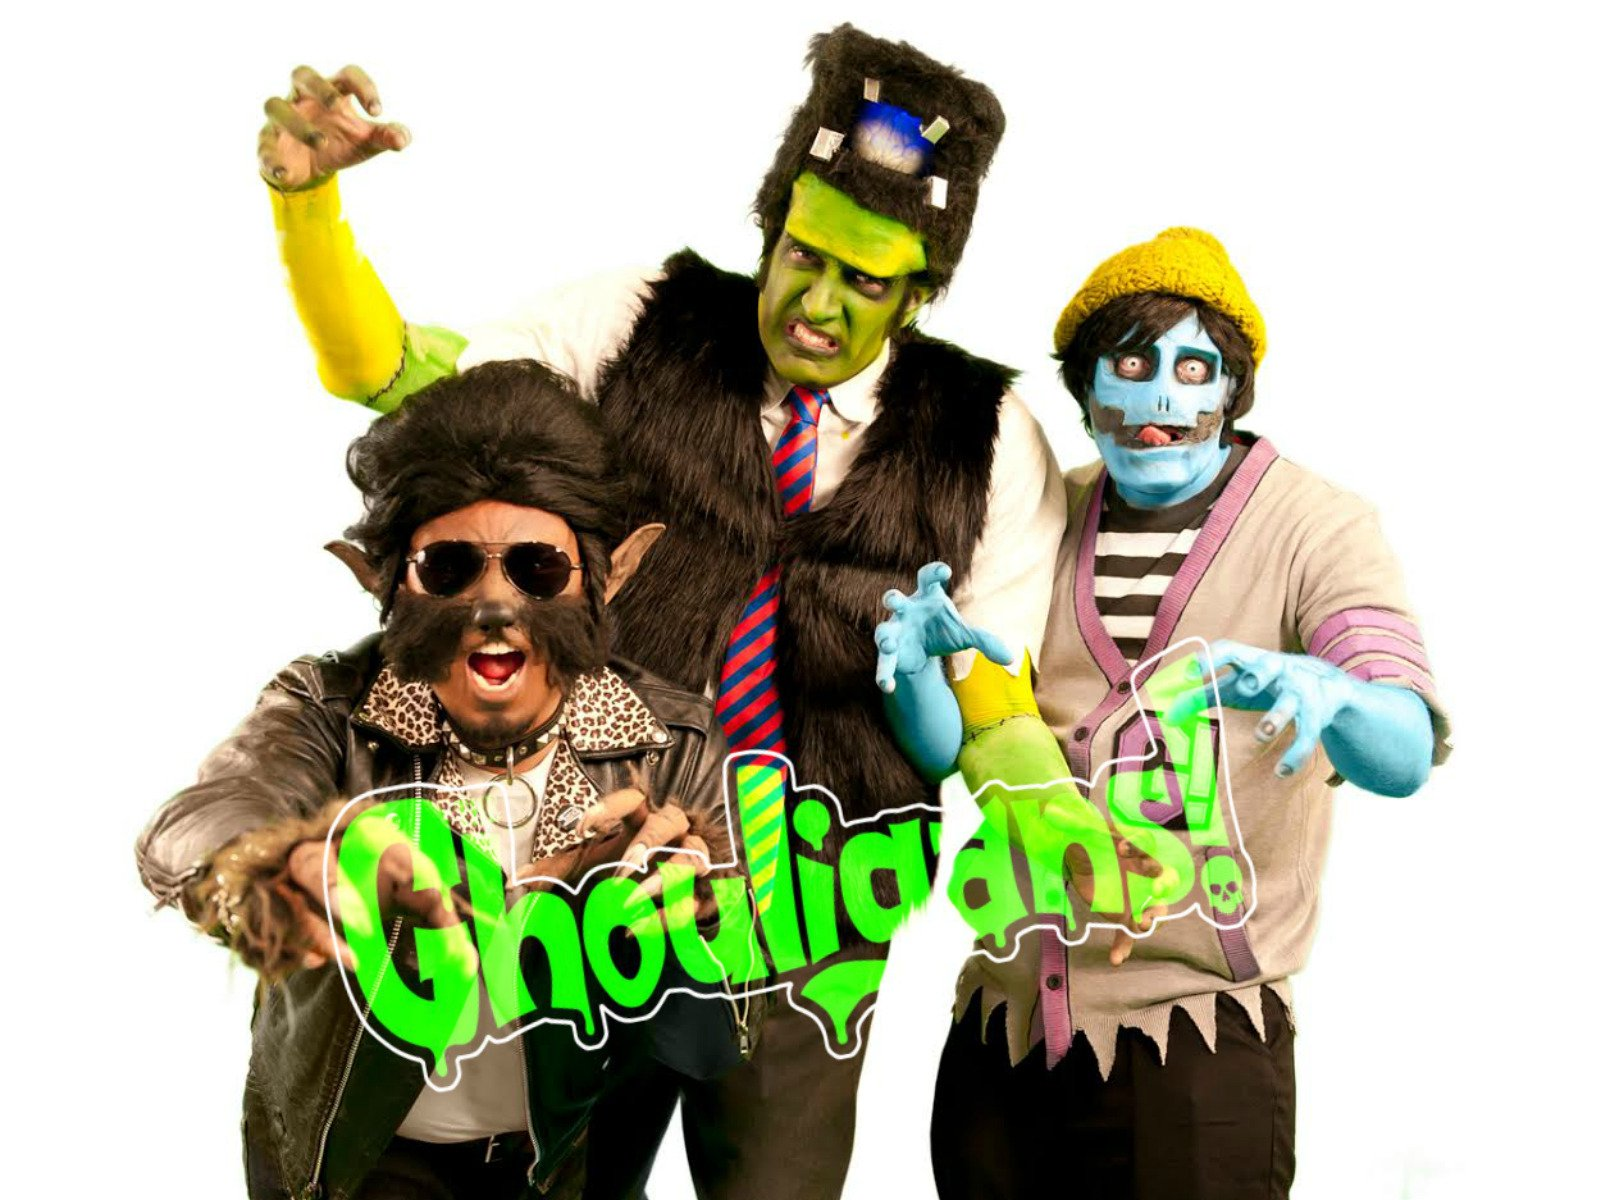 The Ghouligans!